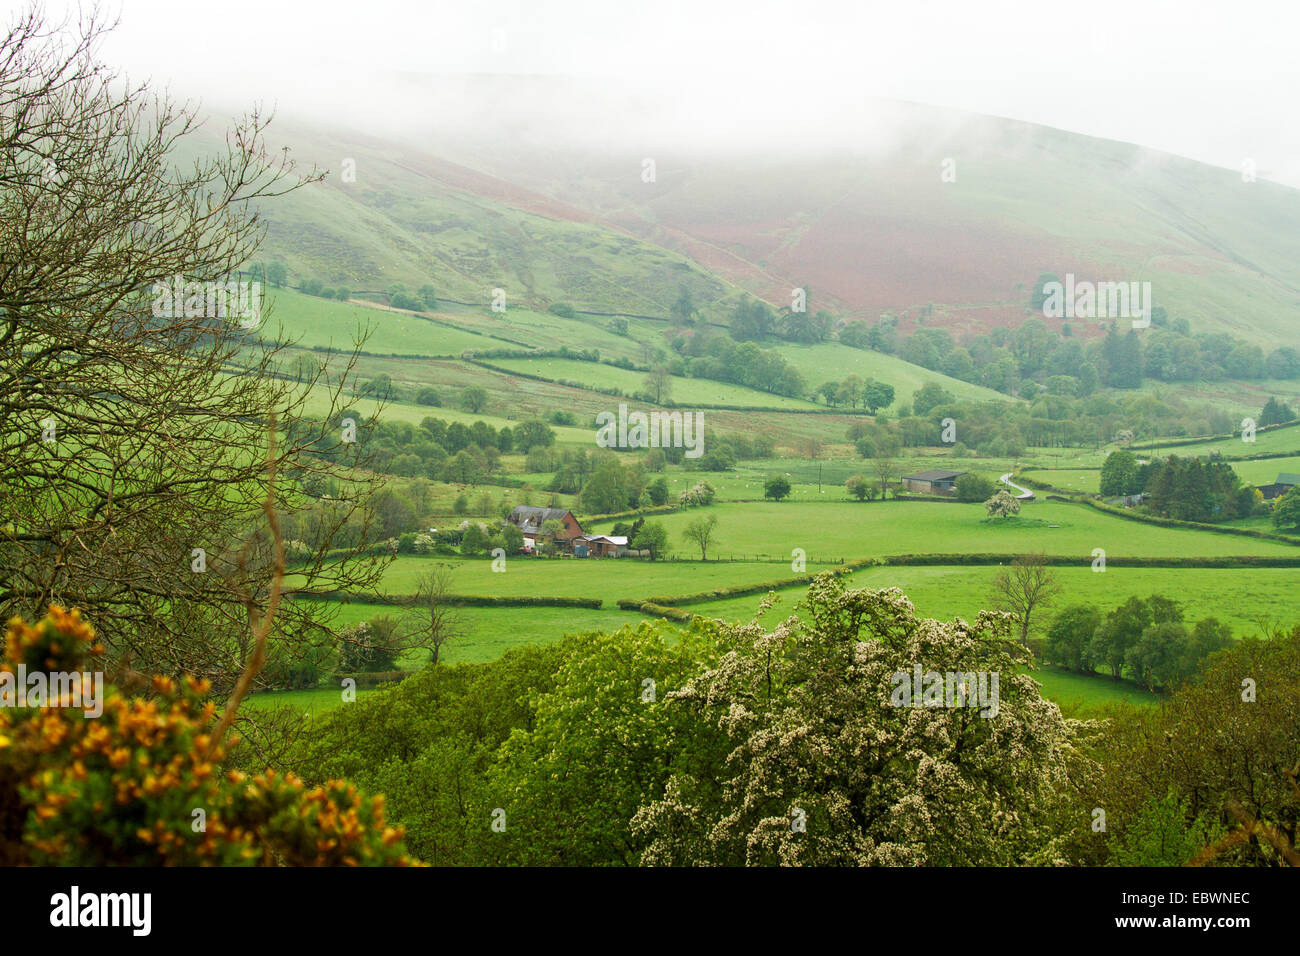 Welsh landscape with mist over hill rising from valley of emerald green fields bordered by hedgerows and clusters - Stock Image